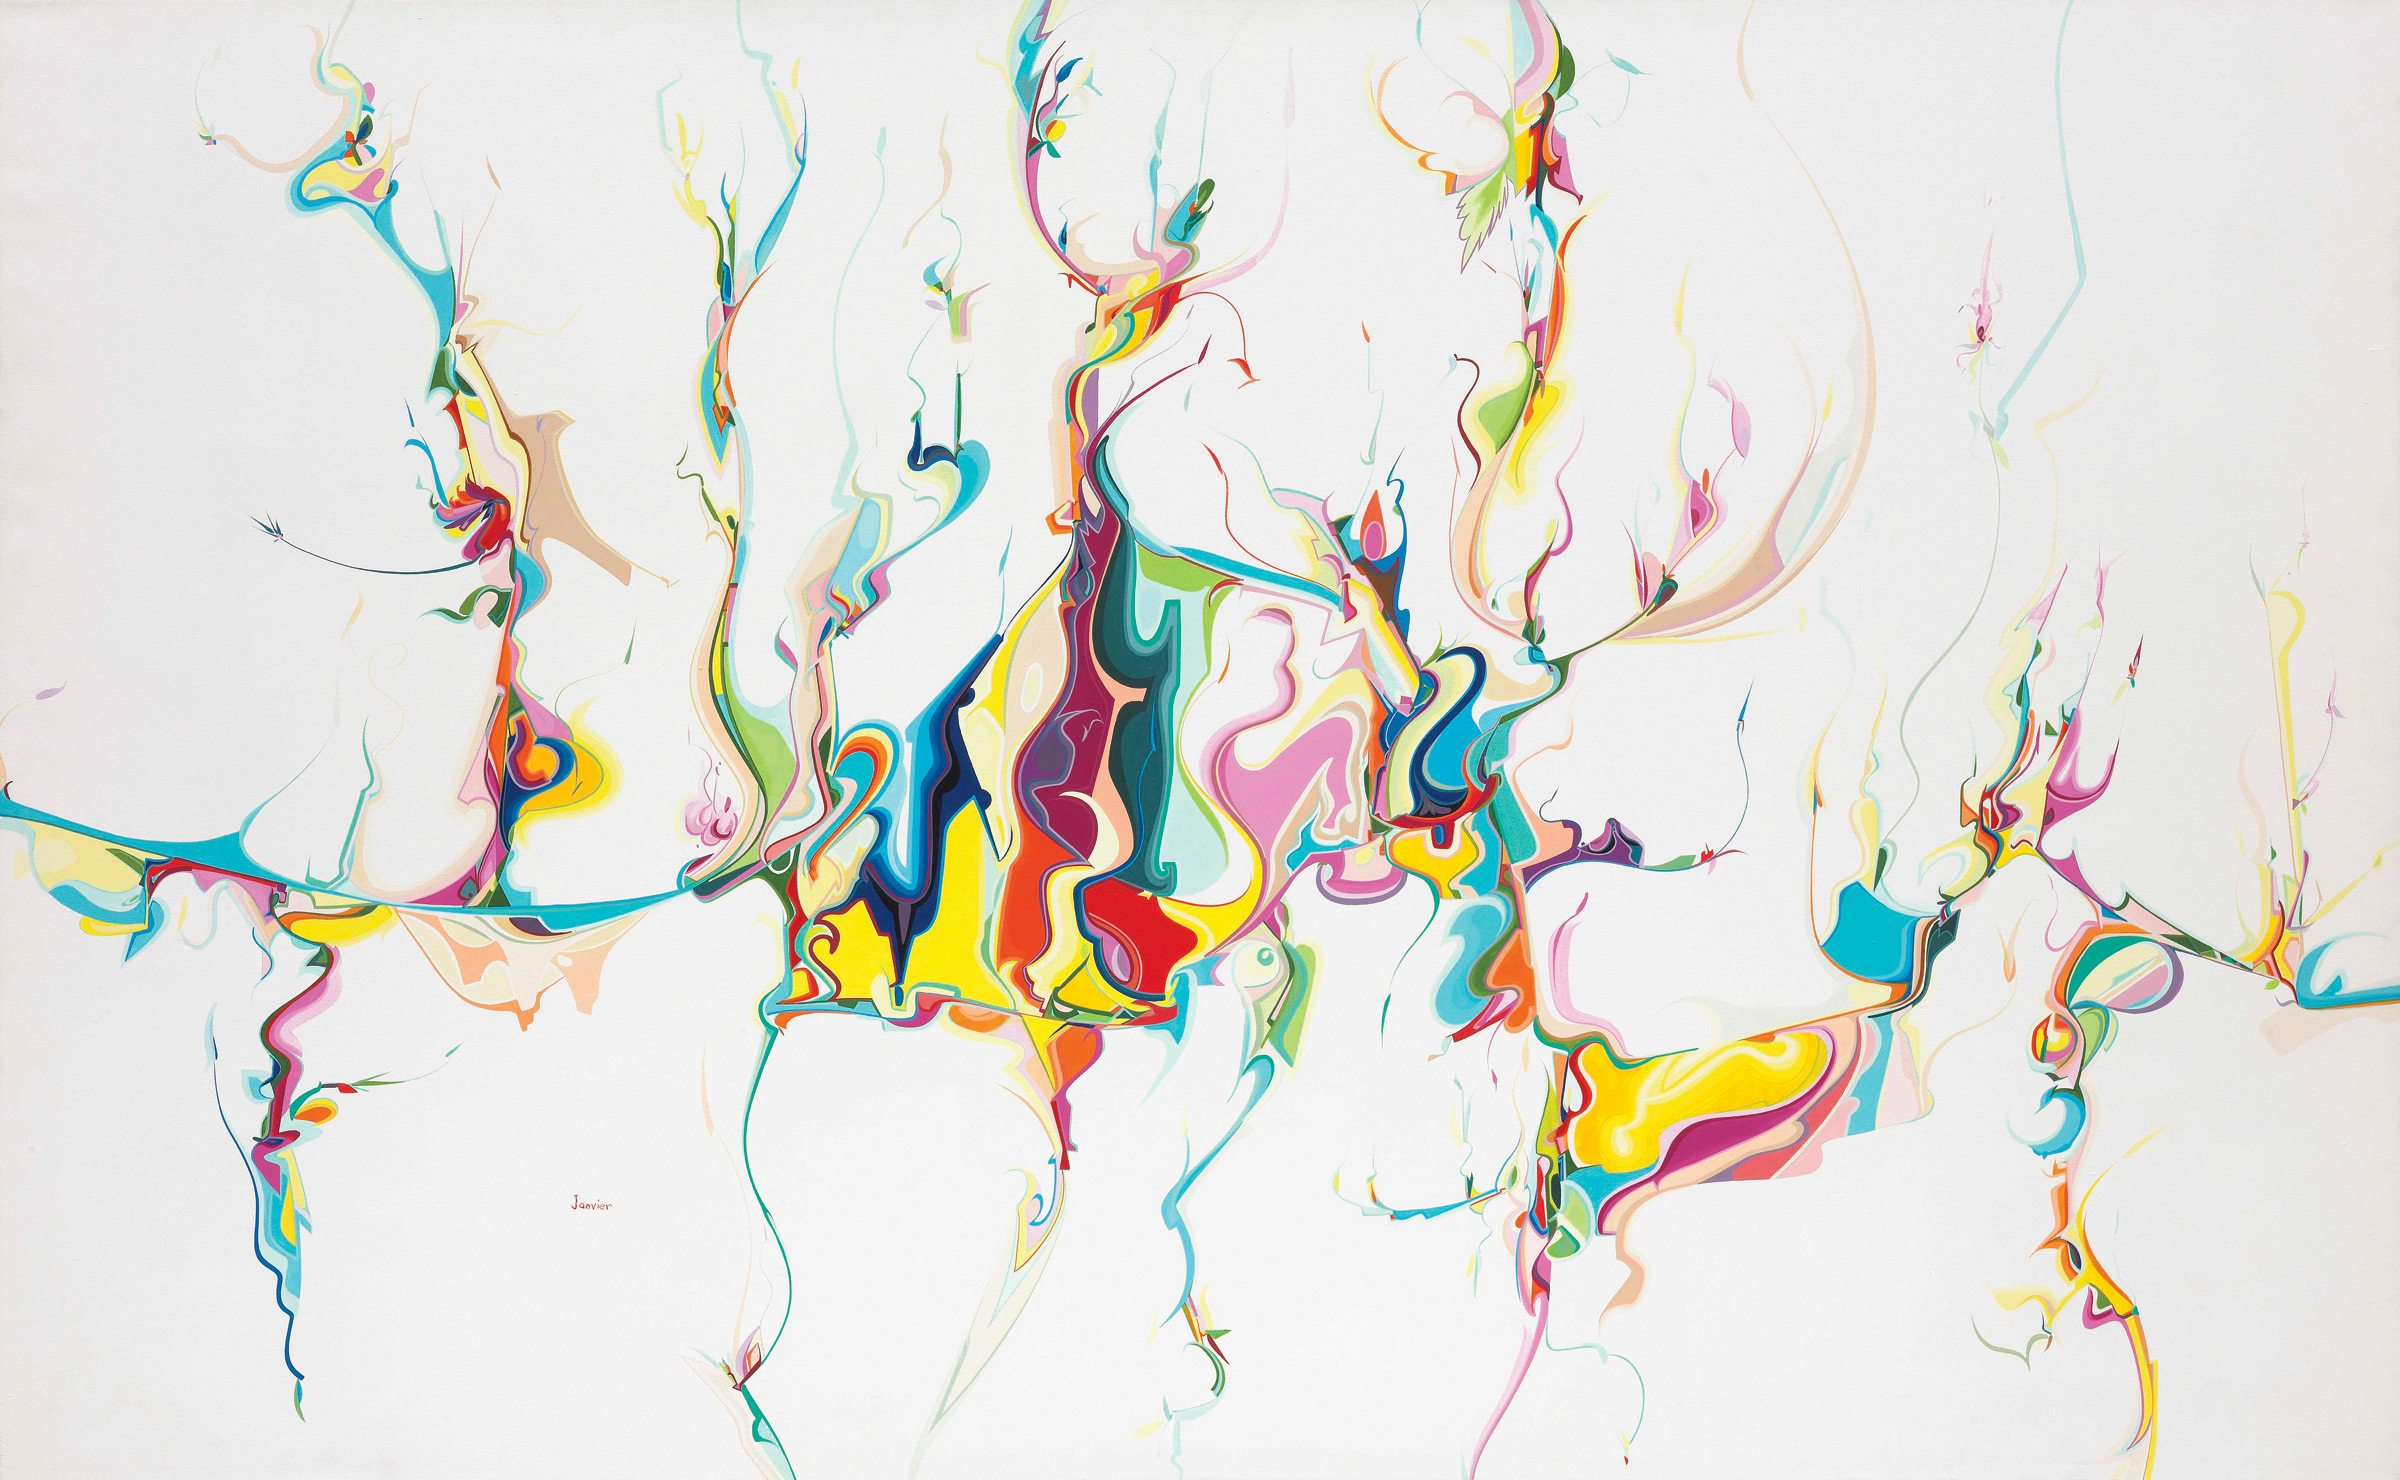 Untitled. 1996, Alex Janvier, National Gallery of Canada @NGC